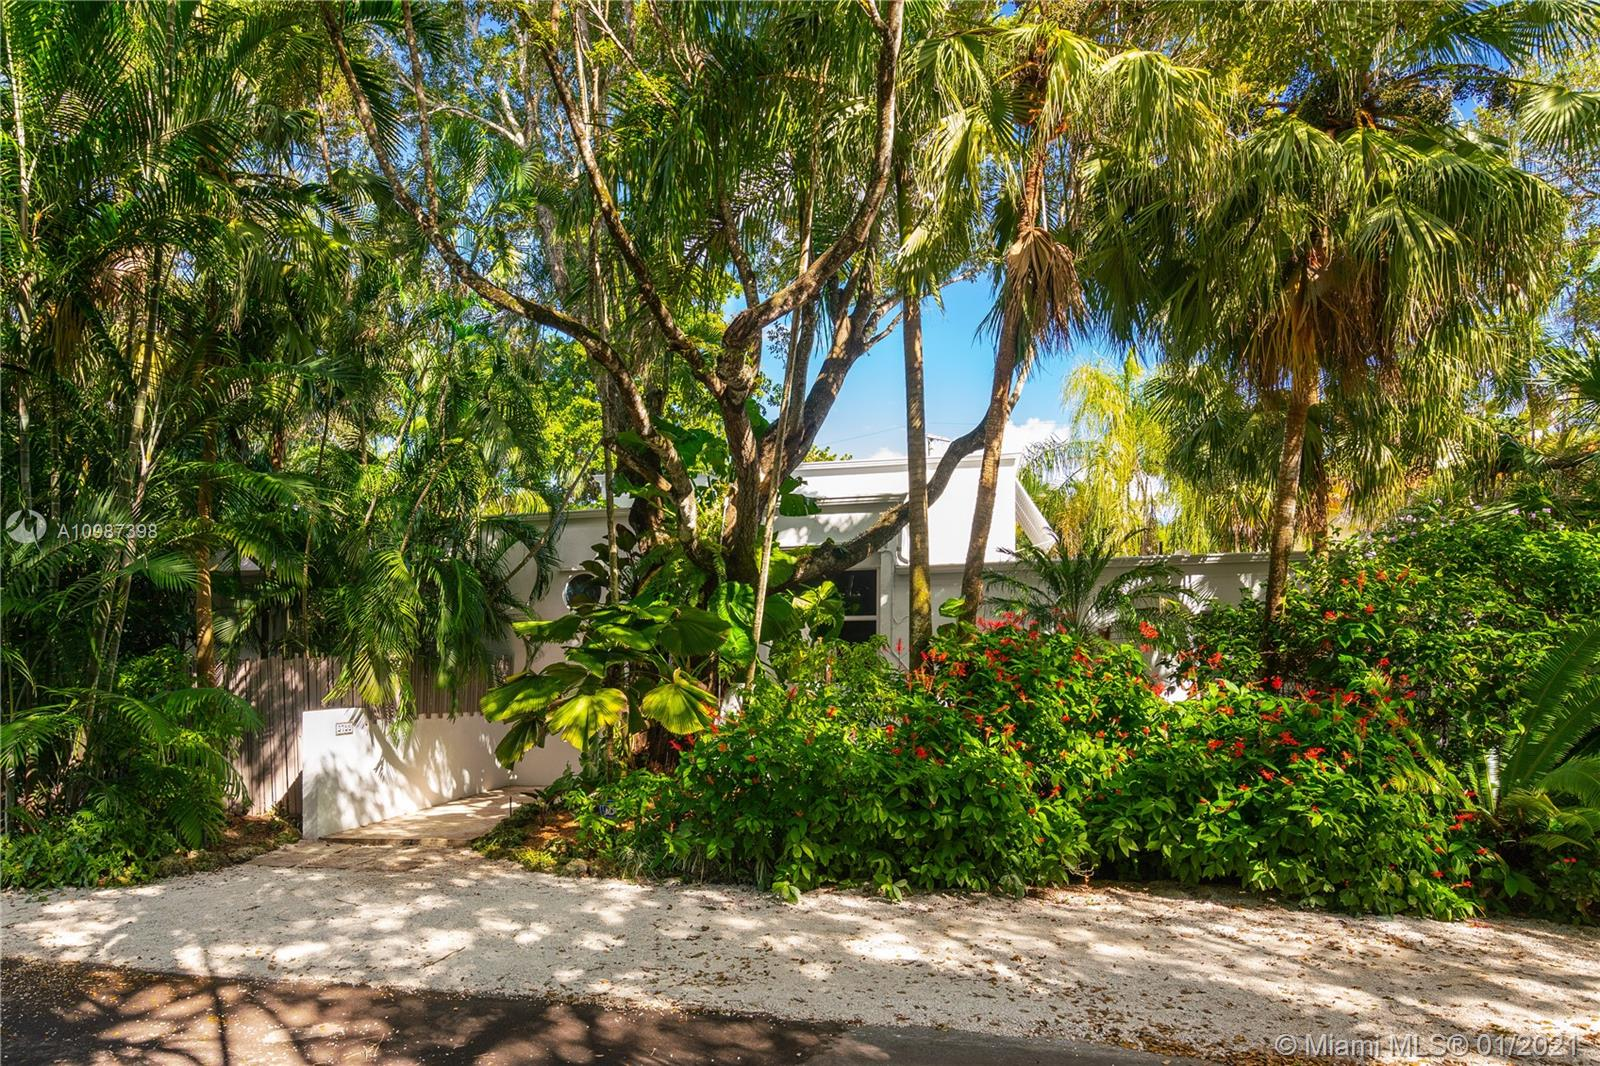 This beautiful contemporary is in a prime South Coconut Grove location. Dramatic and vibrant, this home is nestled within a lushly landscaped garden, offering daily reminders of the tropical paradise that defines the Grove. The living room overlooks the newly resurfaced (and very fun) swimming pool as well as a pavilion for alfresco dining. The master bedroom, with his and hers walk in closets and updated master bath, is a Zen retreat. A second-floor loft which can serve as a library, office, gym, or media room has a wet bar with a wine cooler. The efficient kitchen with its gas cooktop and Viking appliances overlooks a charming dining room which will be the setting for long, lingering dinners and great conversation. One car garage & covered carport. A Very Special Home.